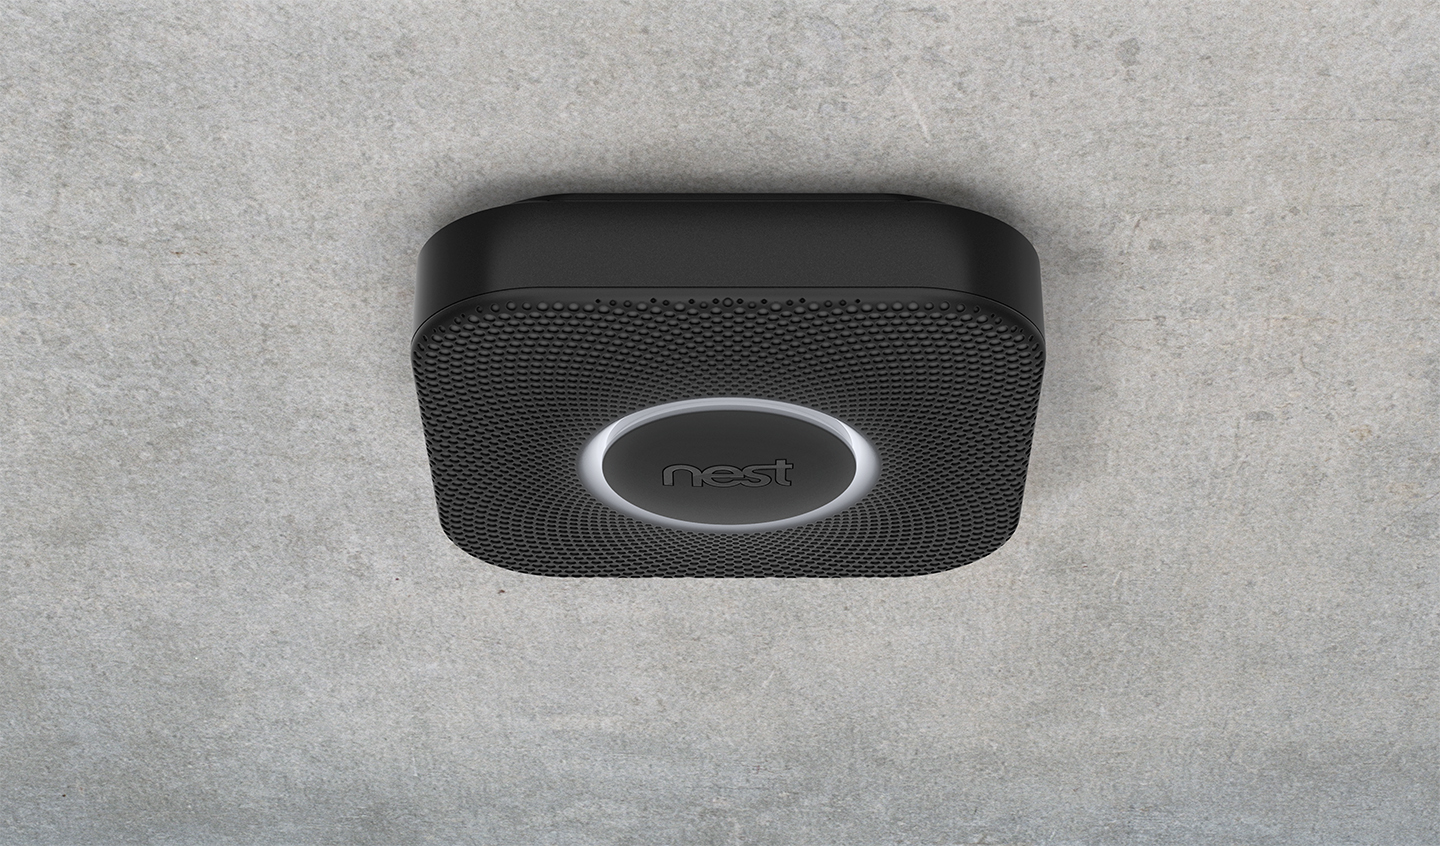 Wow! The new Nest Protect smoke and carbon monoxide alarm